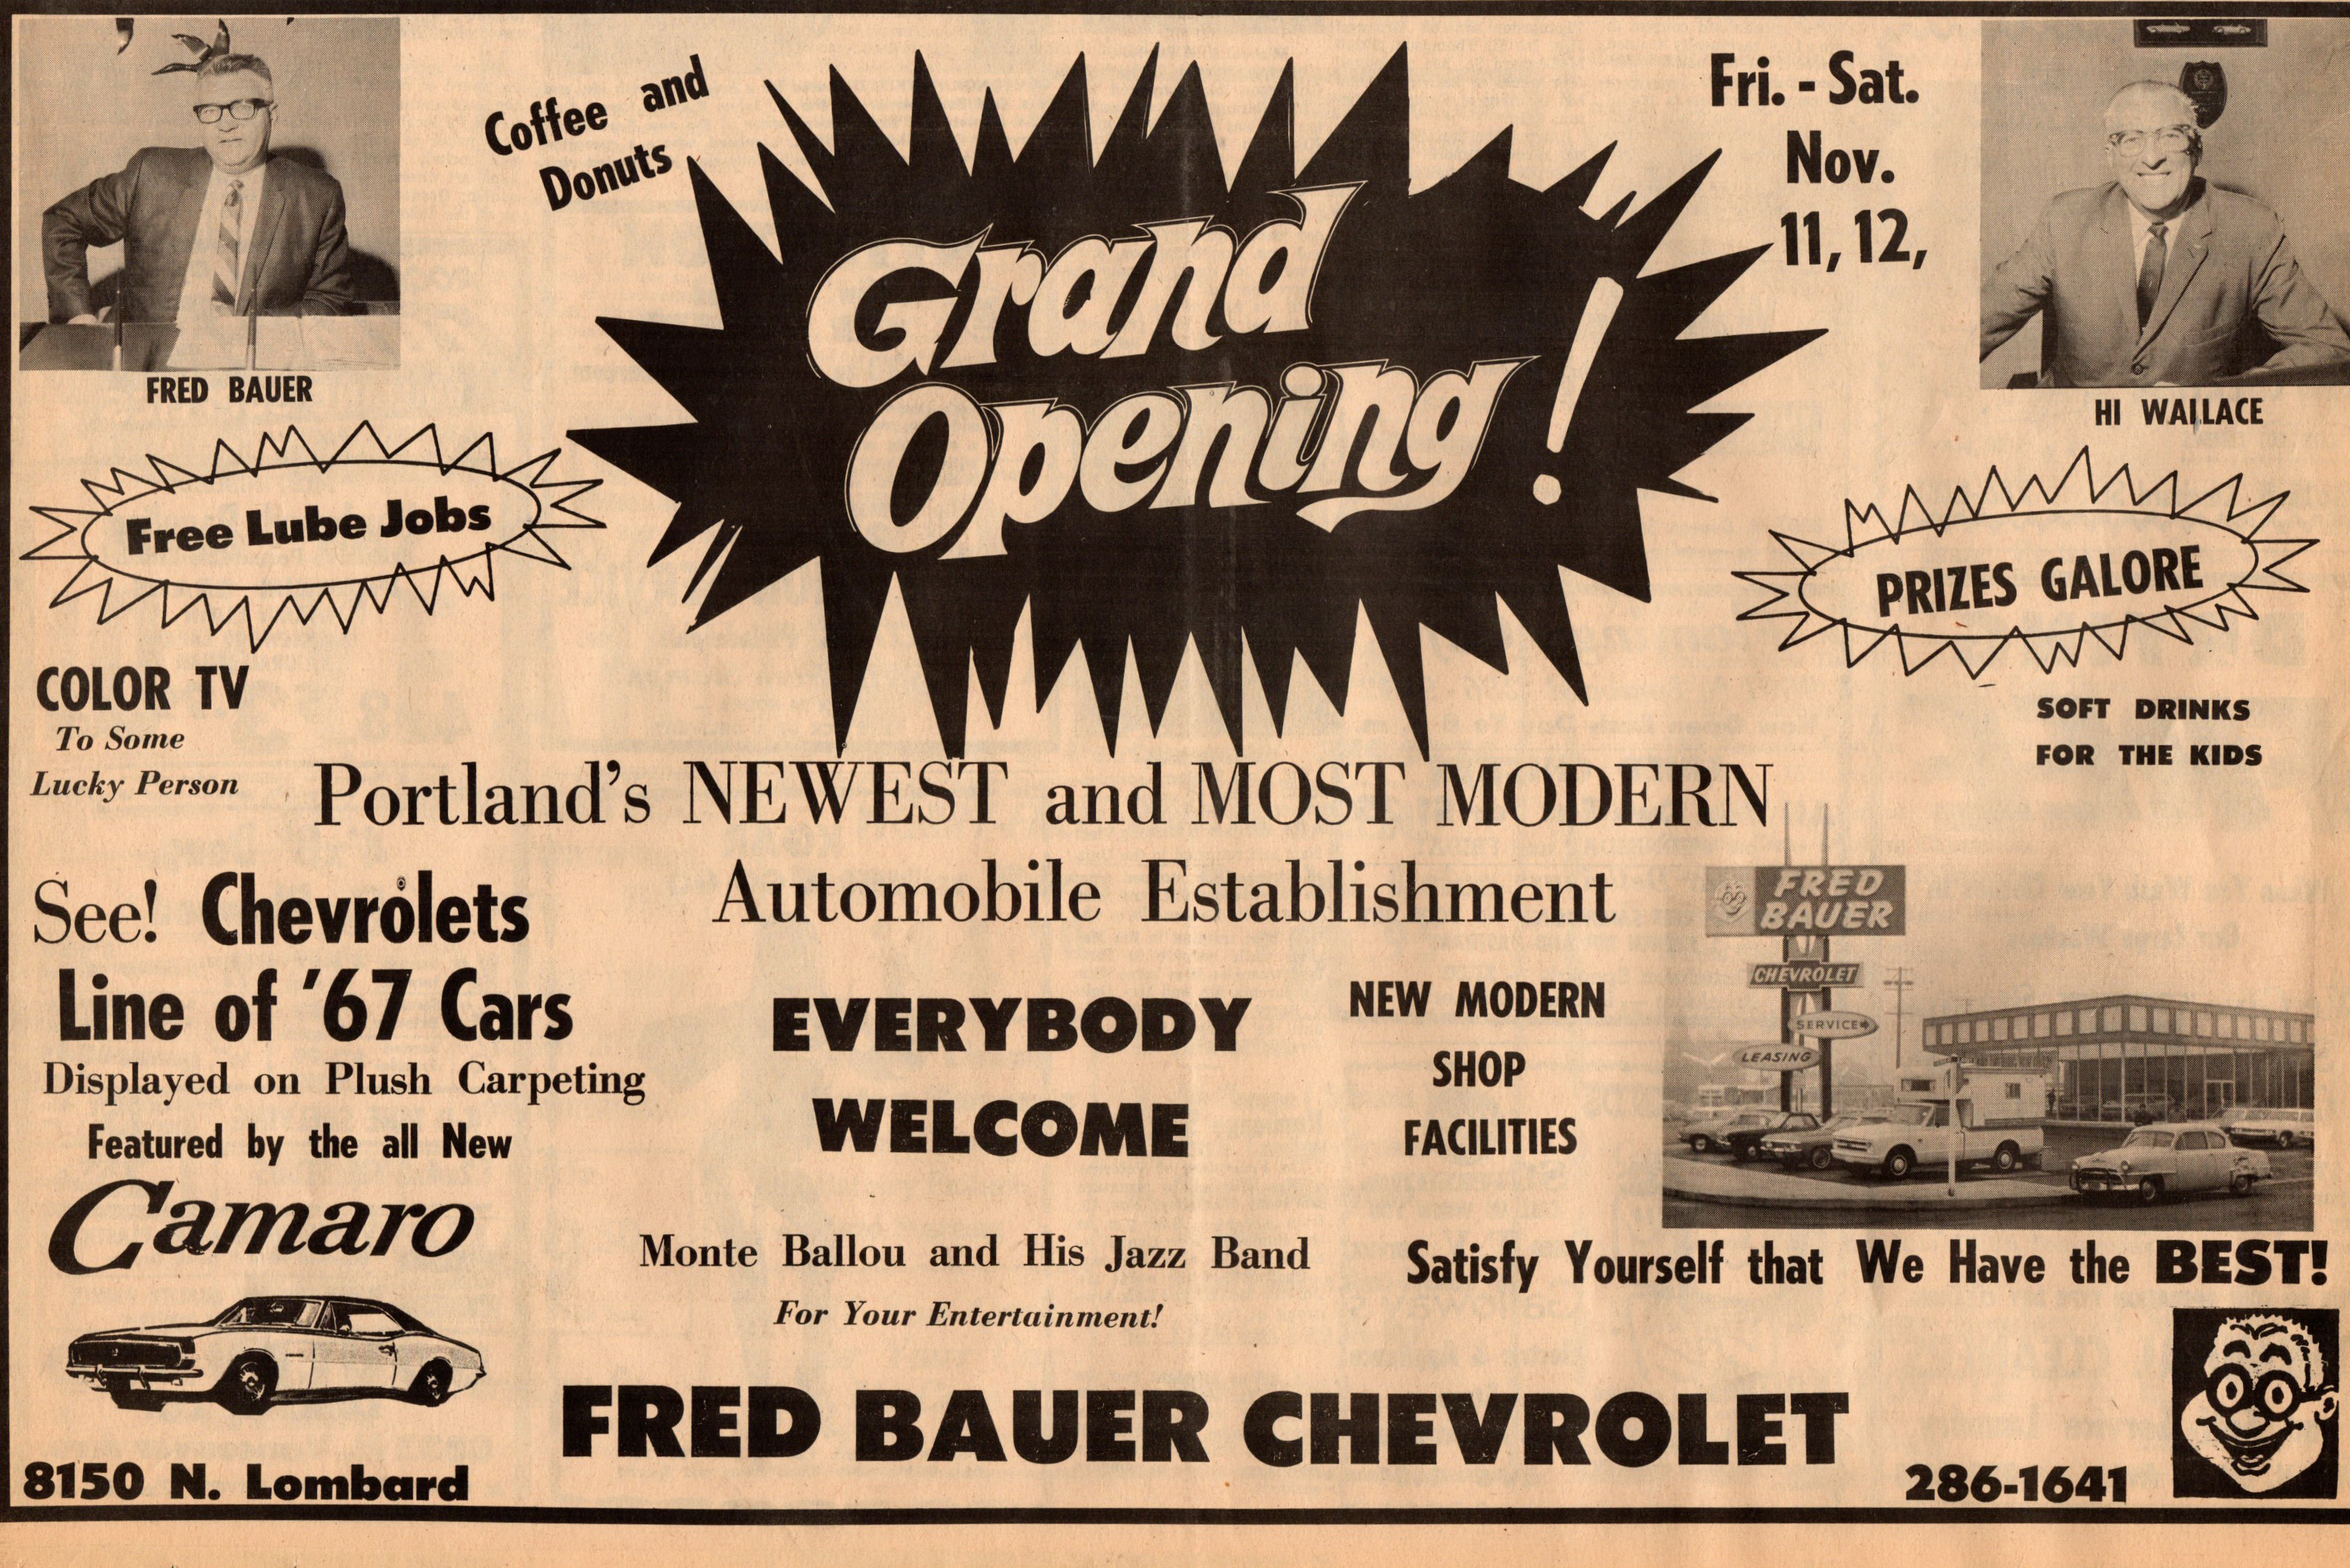 fred-bauer-8150-n-lombard-new-store-nov-1966-03